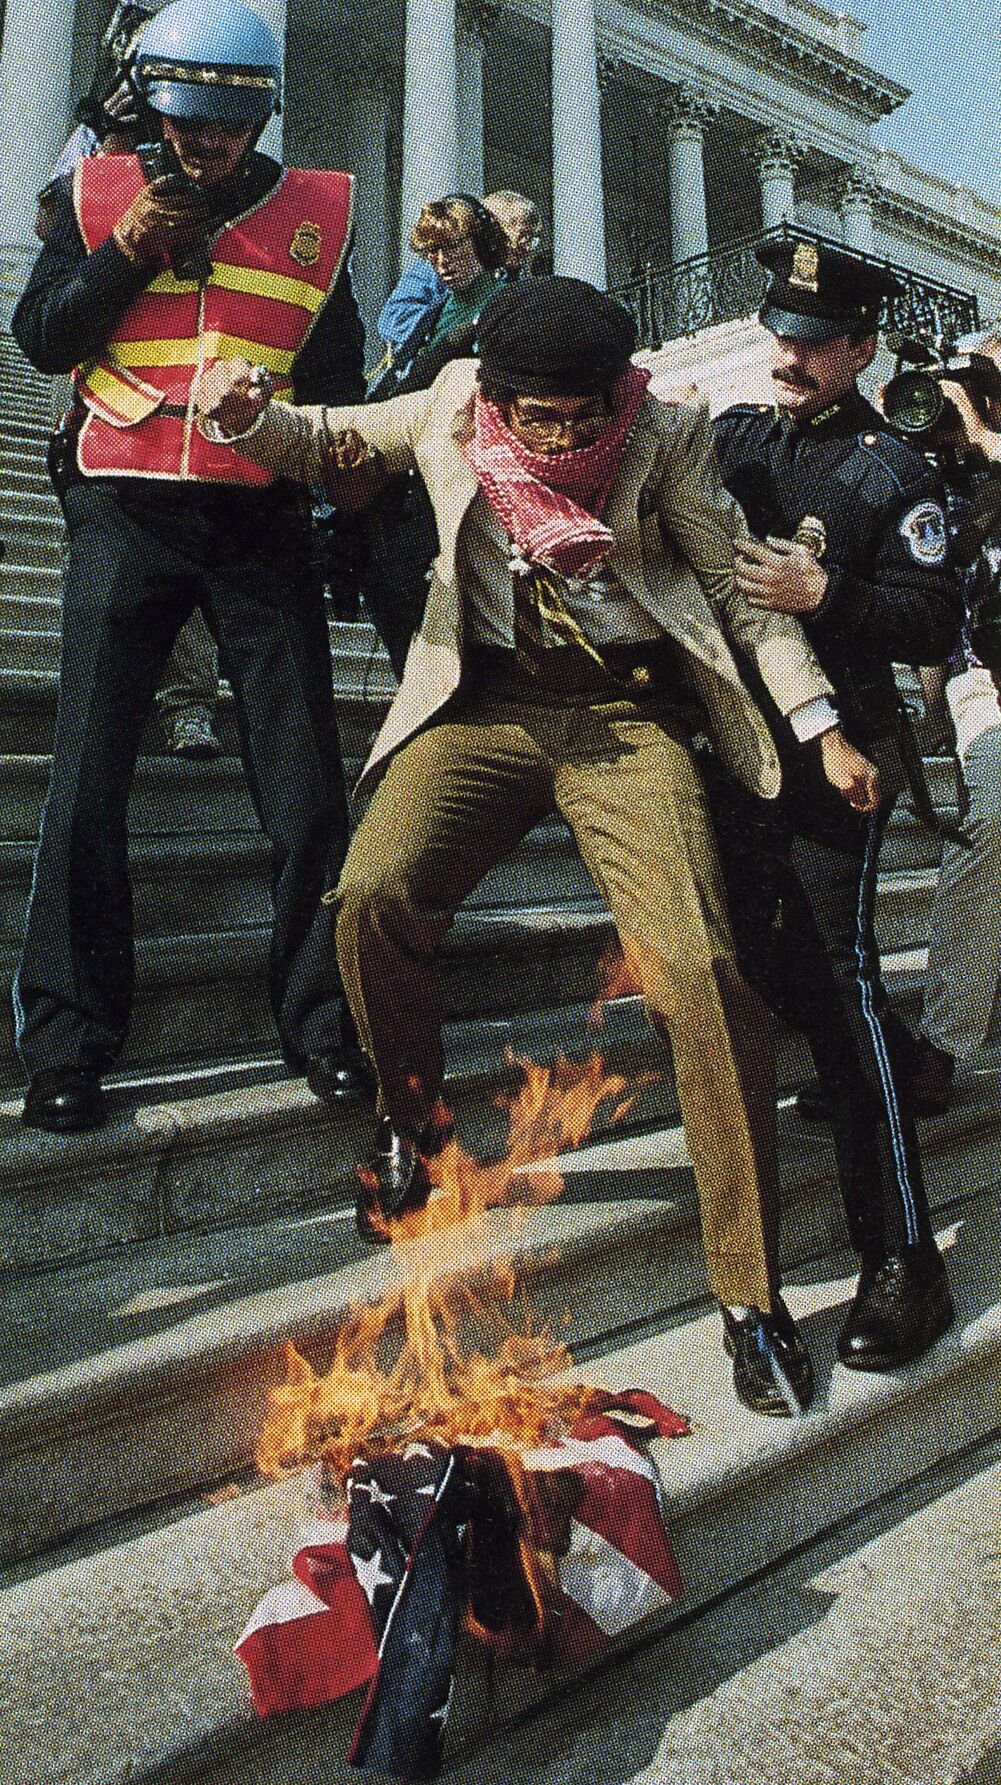 Dread Scott burning the American FLag on the steps of the U.S. Capitol, October 30, 1989, photograph by Charles Tasnadi, AP